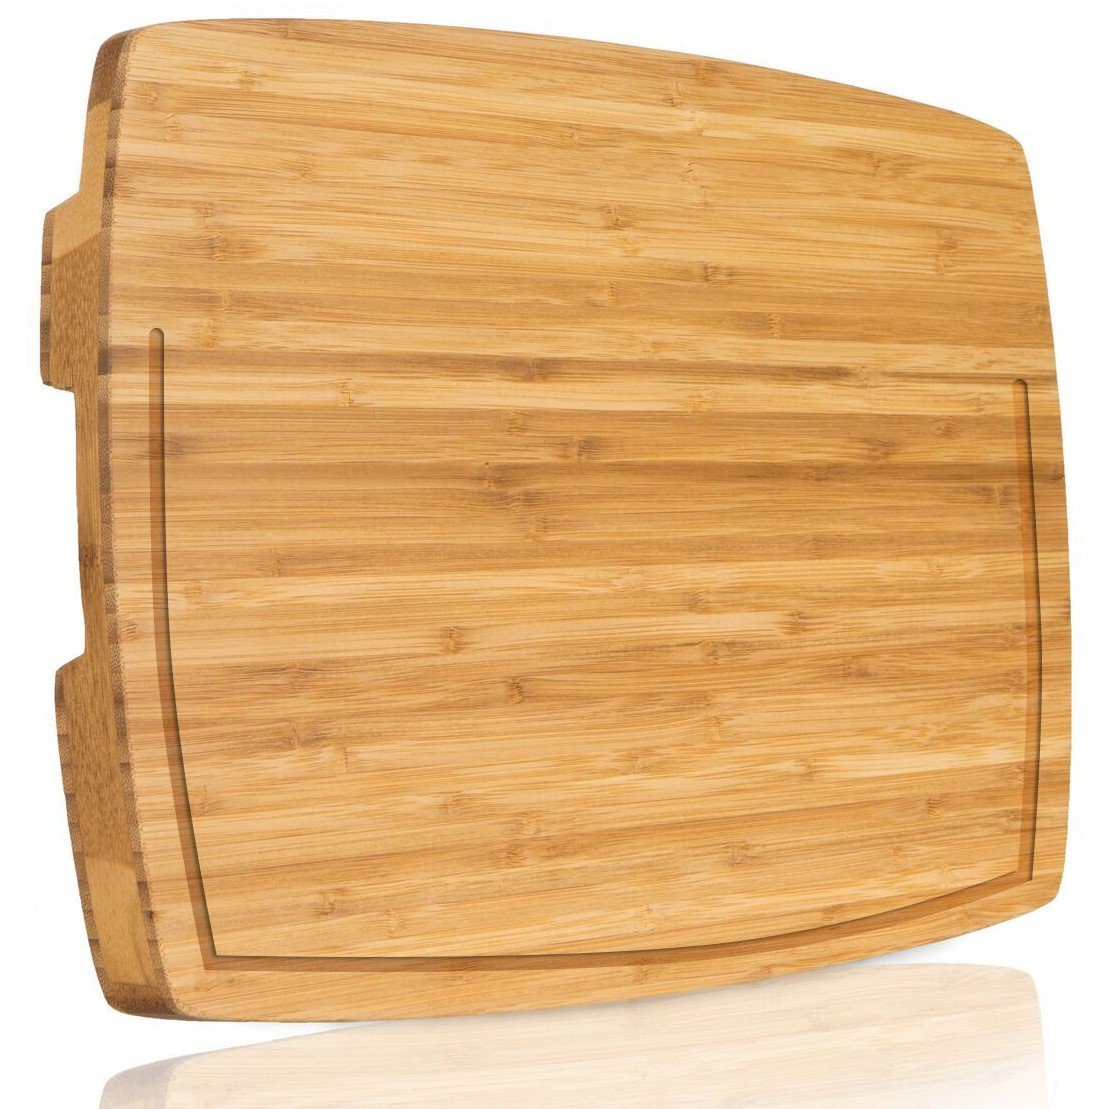 Extra Large Bamboo Chopping Block With Groove - Professional Wood End Grain Butcher Block Cutting Board that Last a Lifetime / Non-Slip Feet, Unique FOOD EASY-TRANSFER DESIGN by PEPEGOO